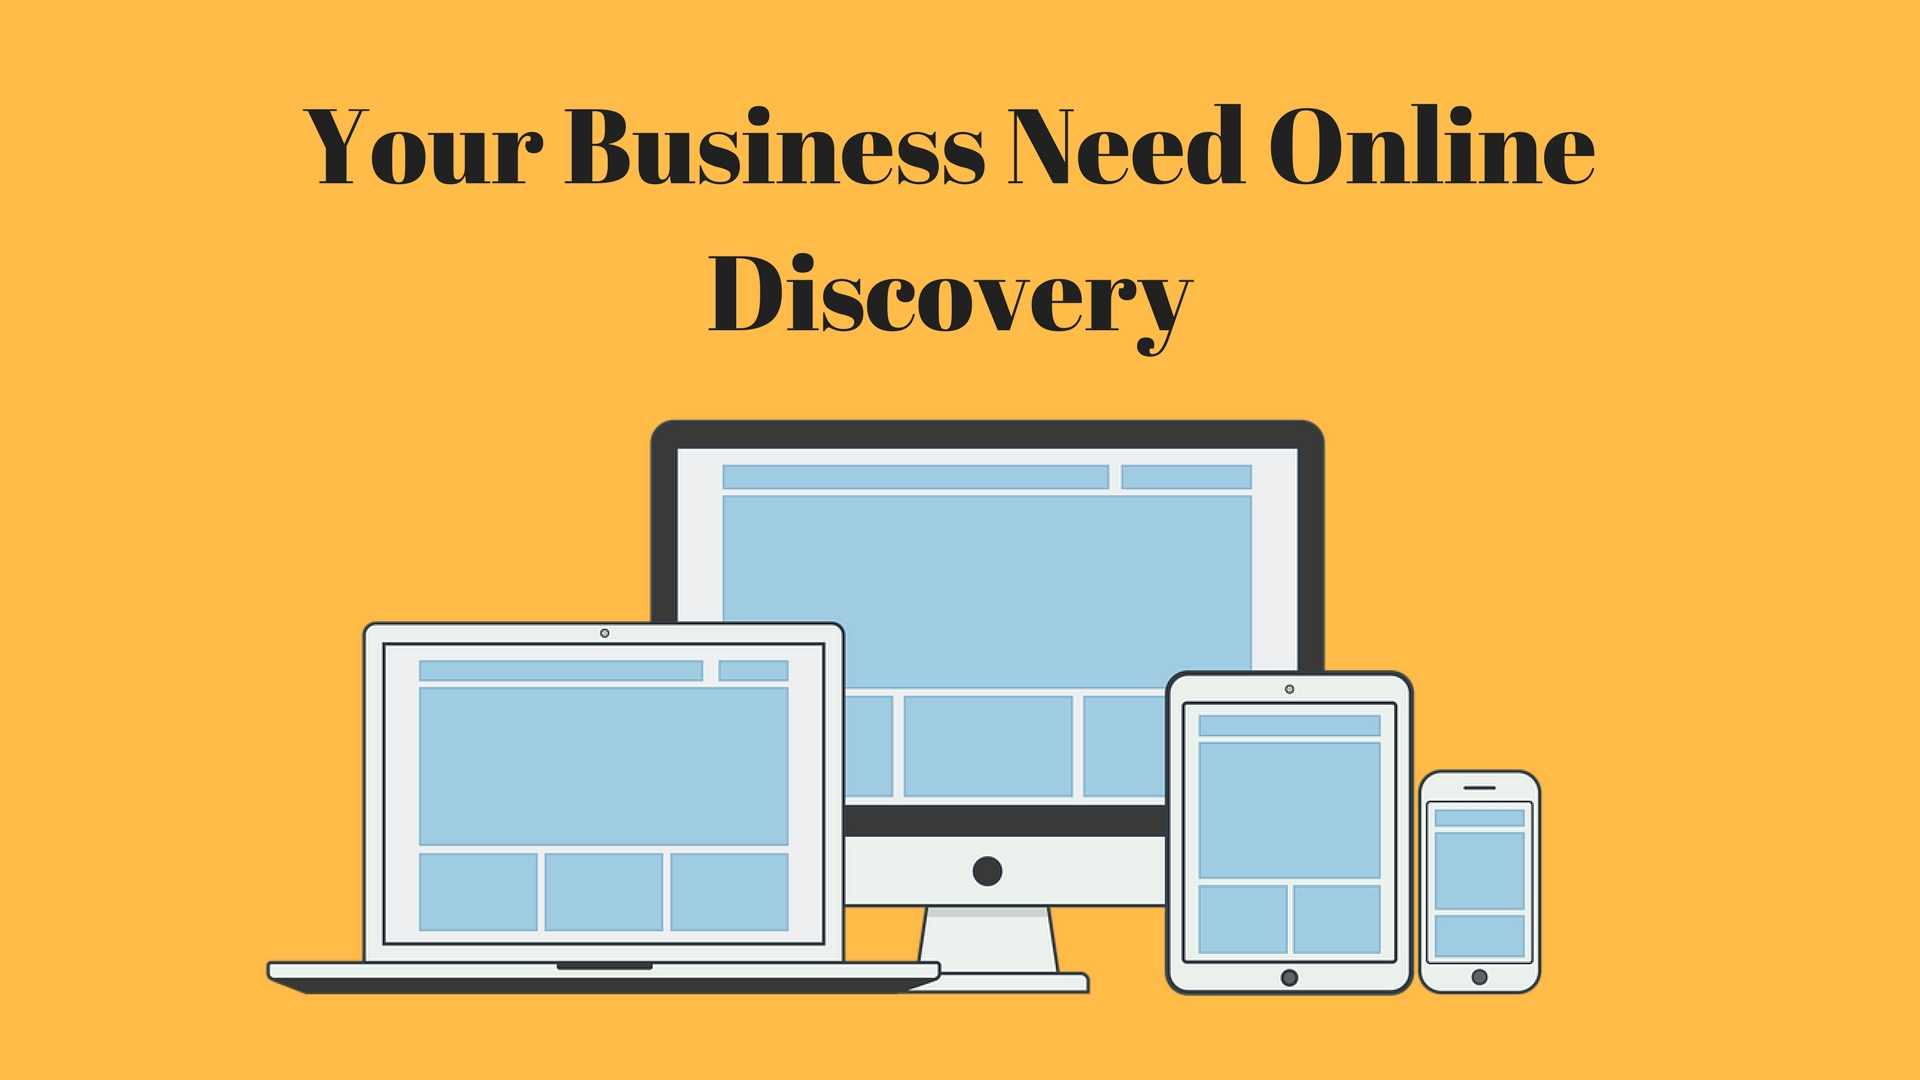 Your Business Need Online Discovery